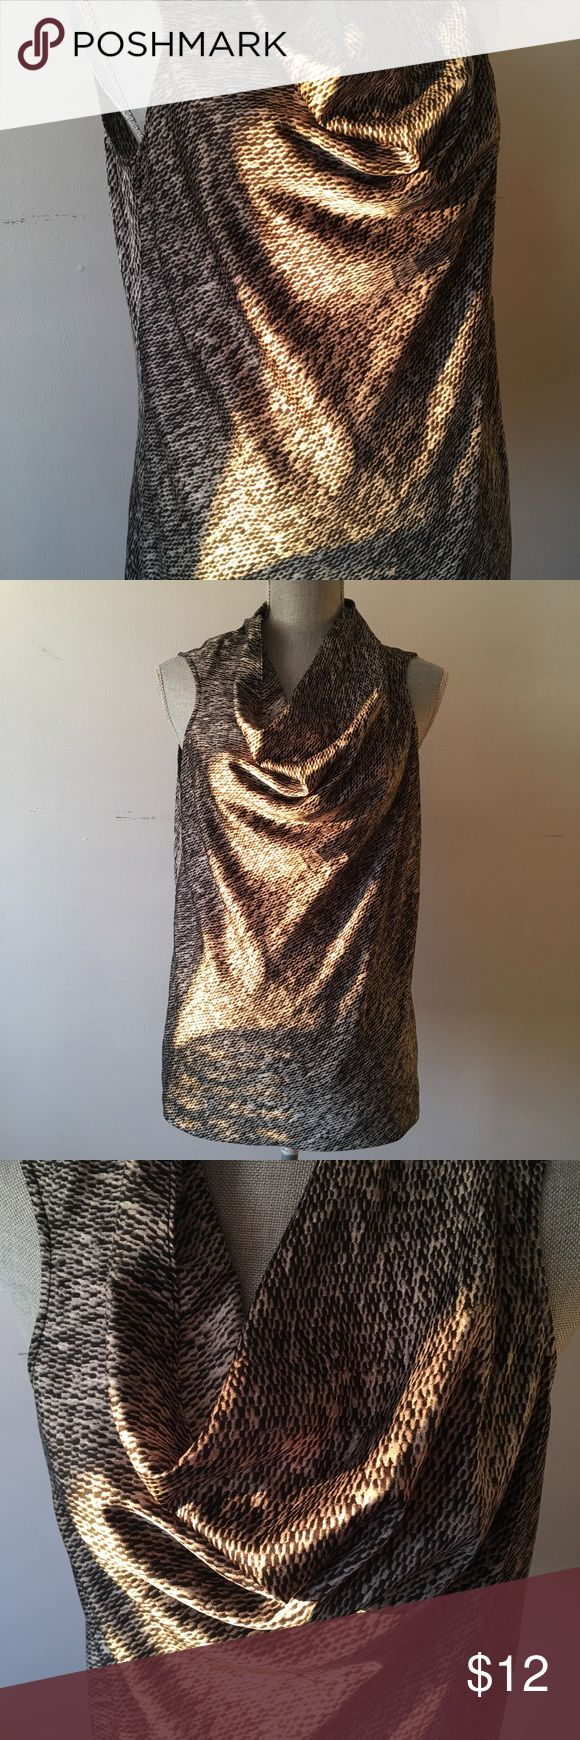 Vince Camuto snake print top Such an elegant top for a night out or for office dress code if worn under a classic blazer ! Great condition and very flattering to your figure . Vince Camuto Tops Blouses